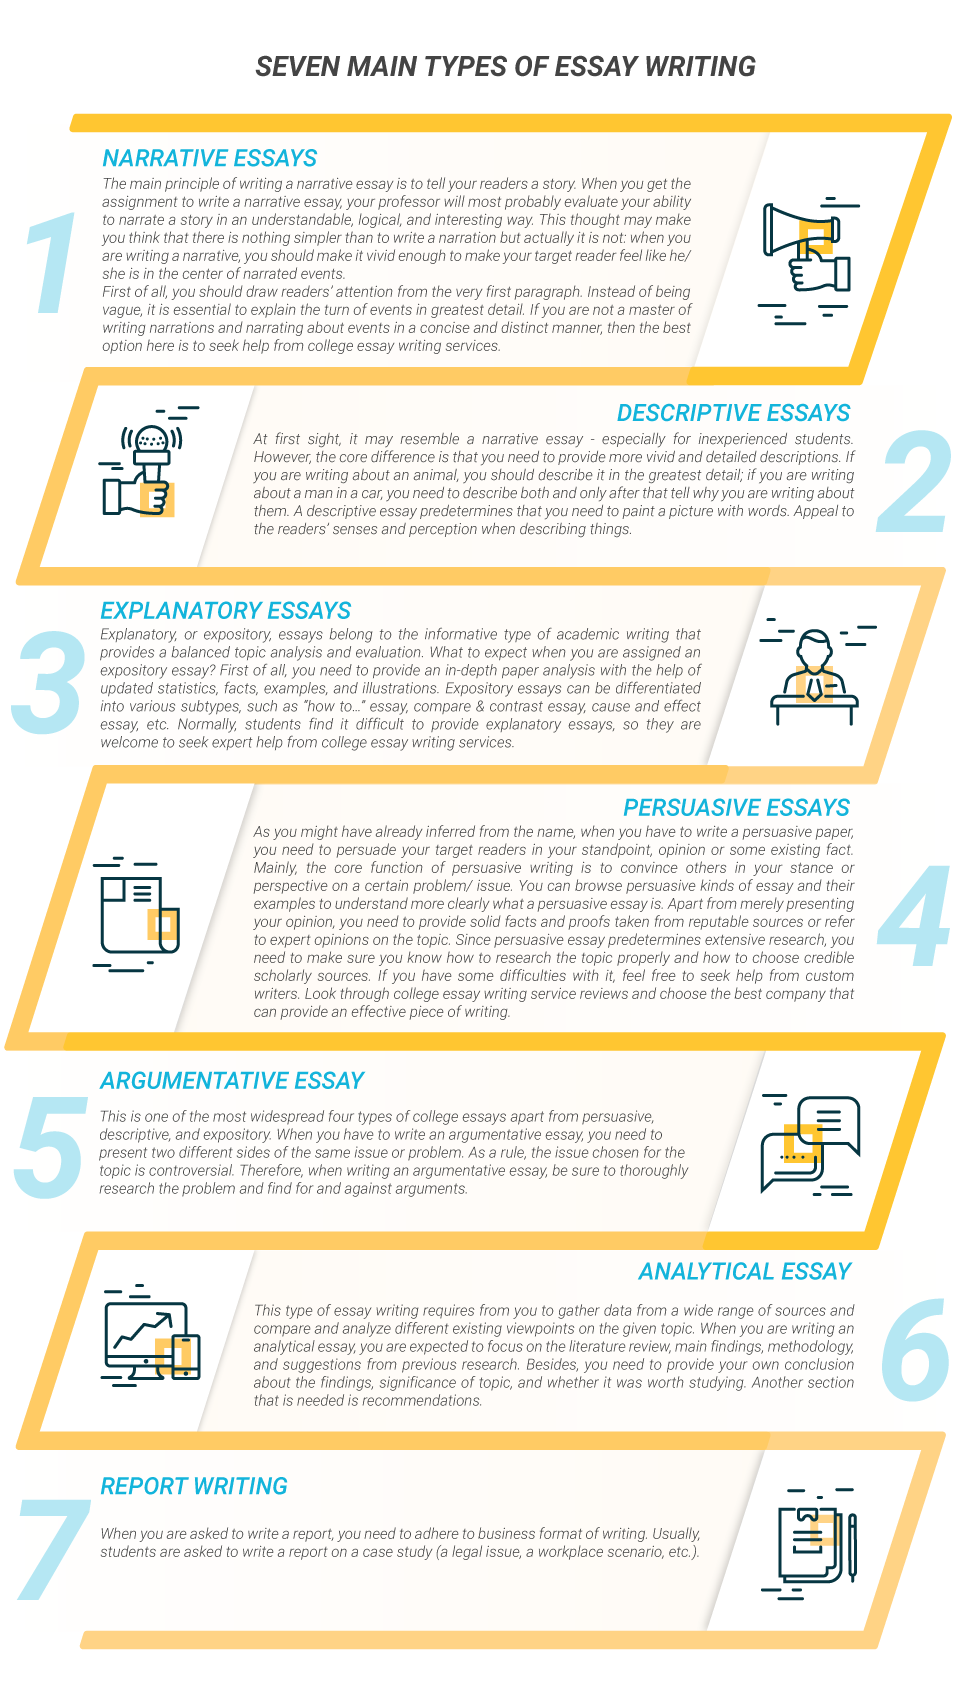 Seven main types of college essays